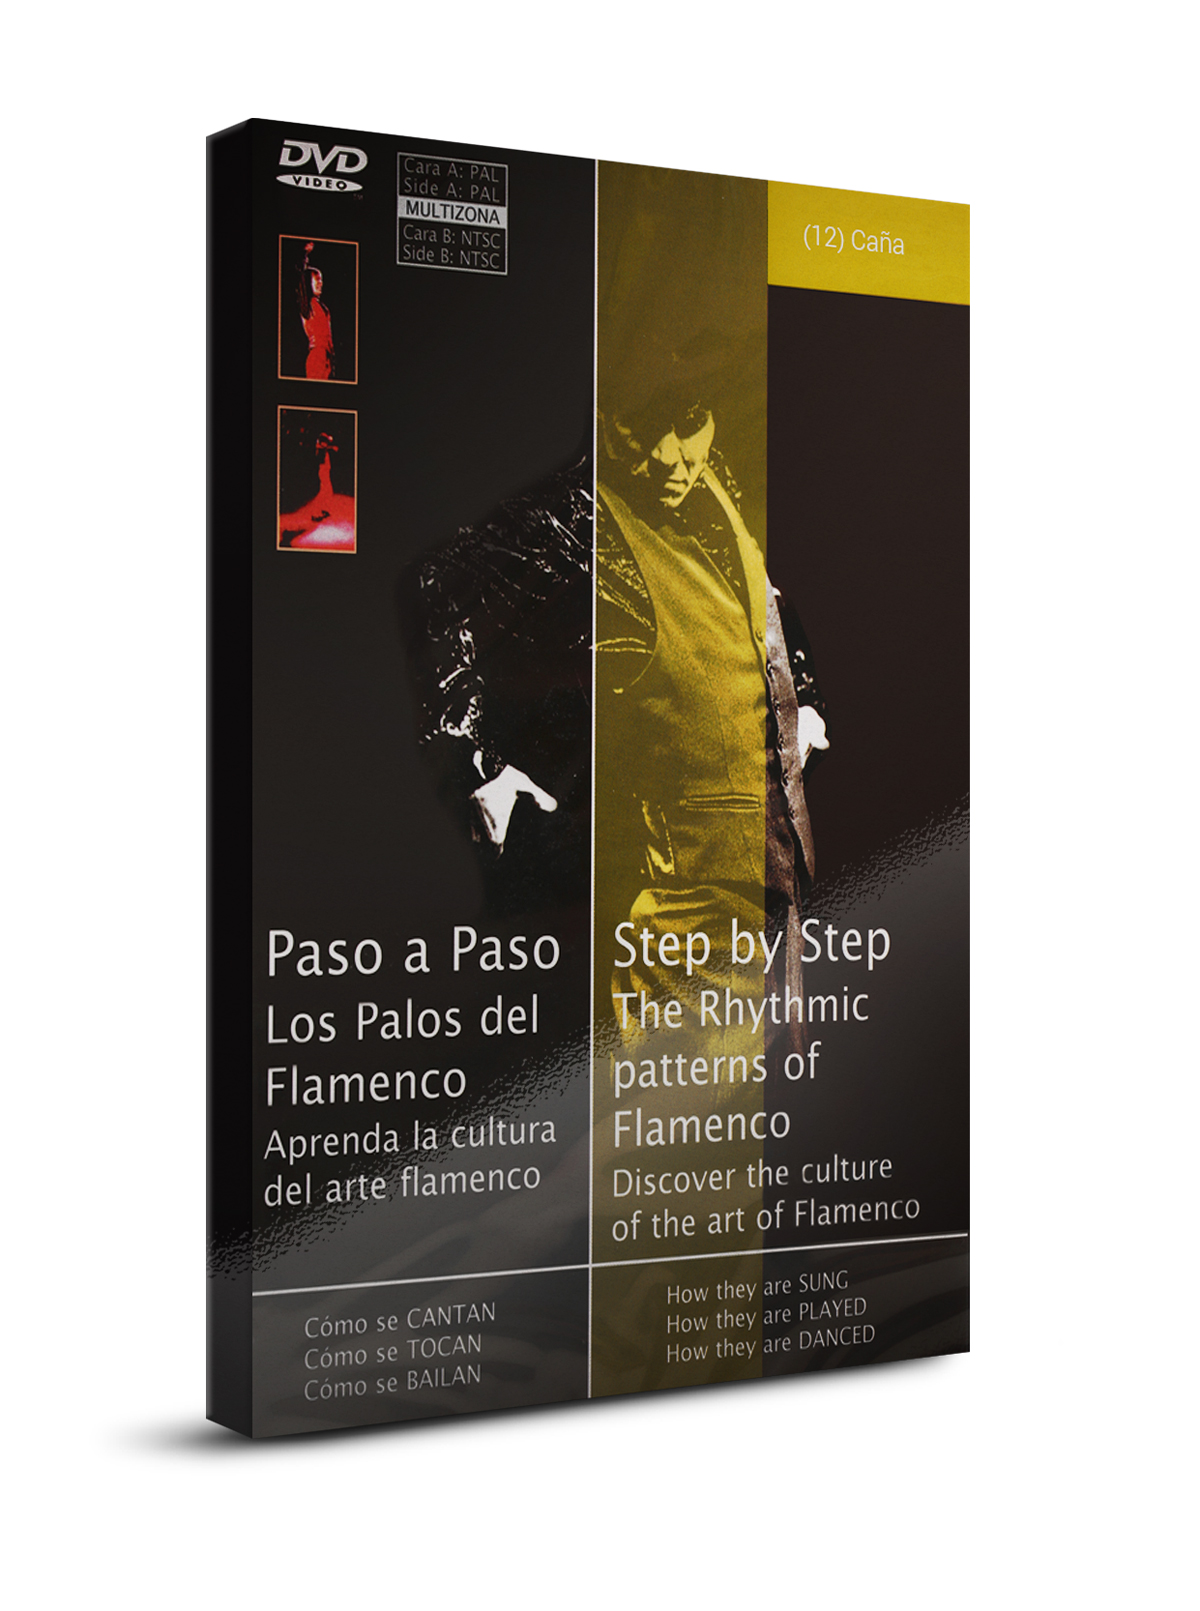 Flamenco Dance Classes Cana Dvd Dvd Dance La Sonanta Flamenco